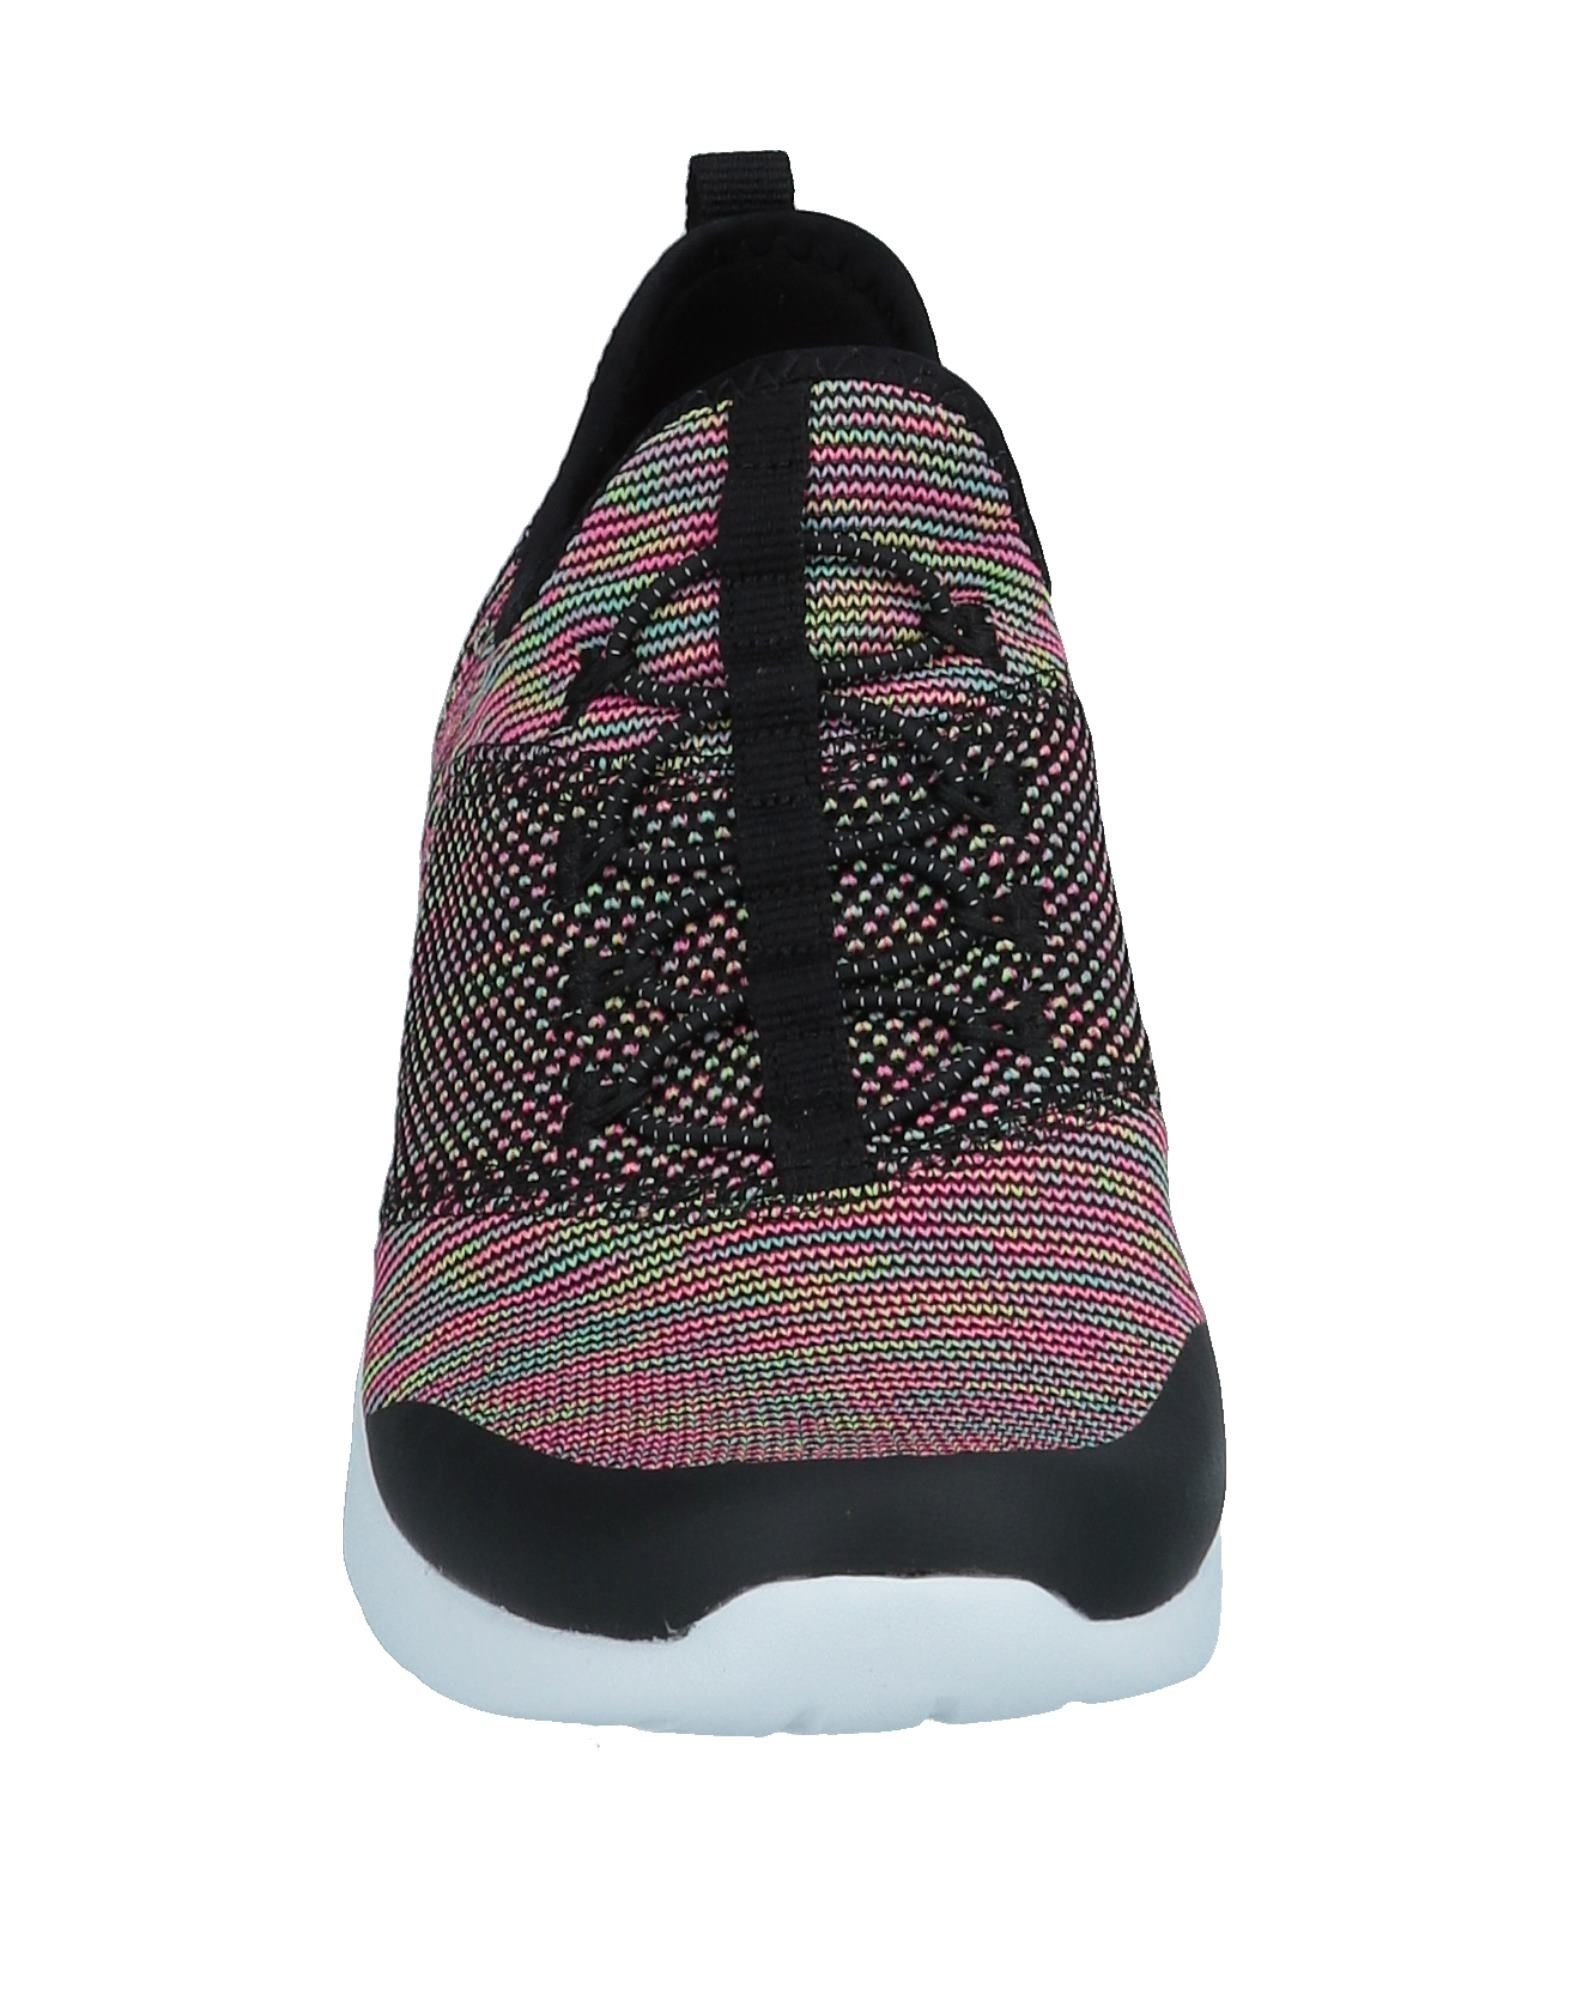 sketchers baskets - femmes sketchers baskets en ligne sur sur sur canada - 11554813pw 337461